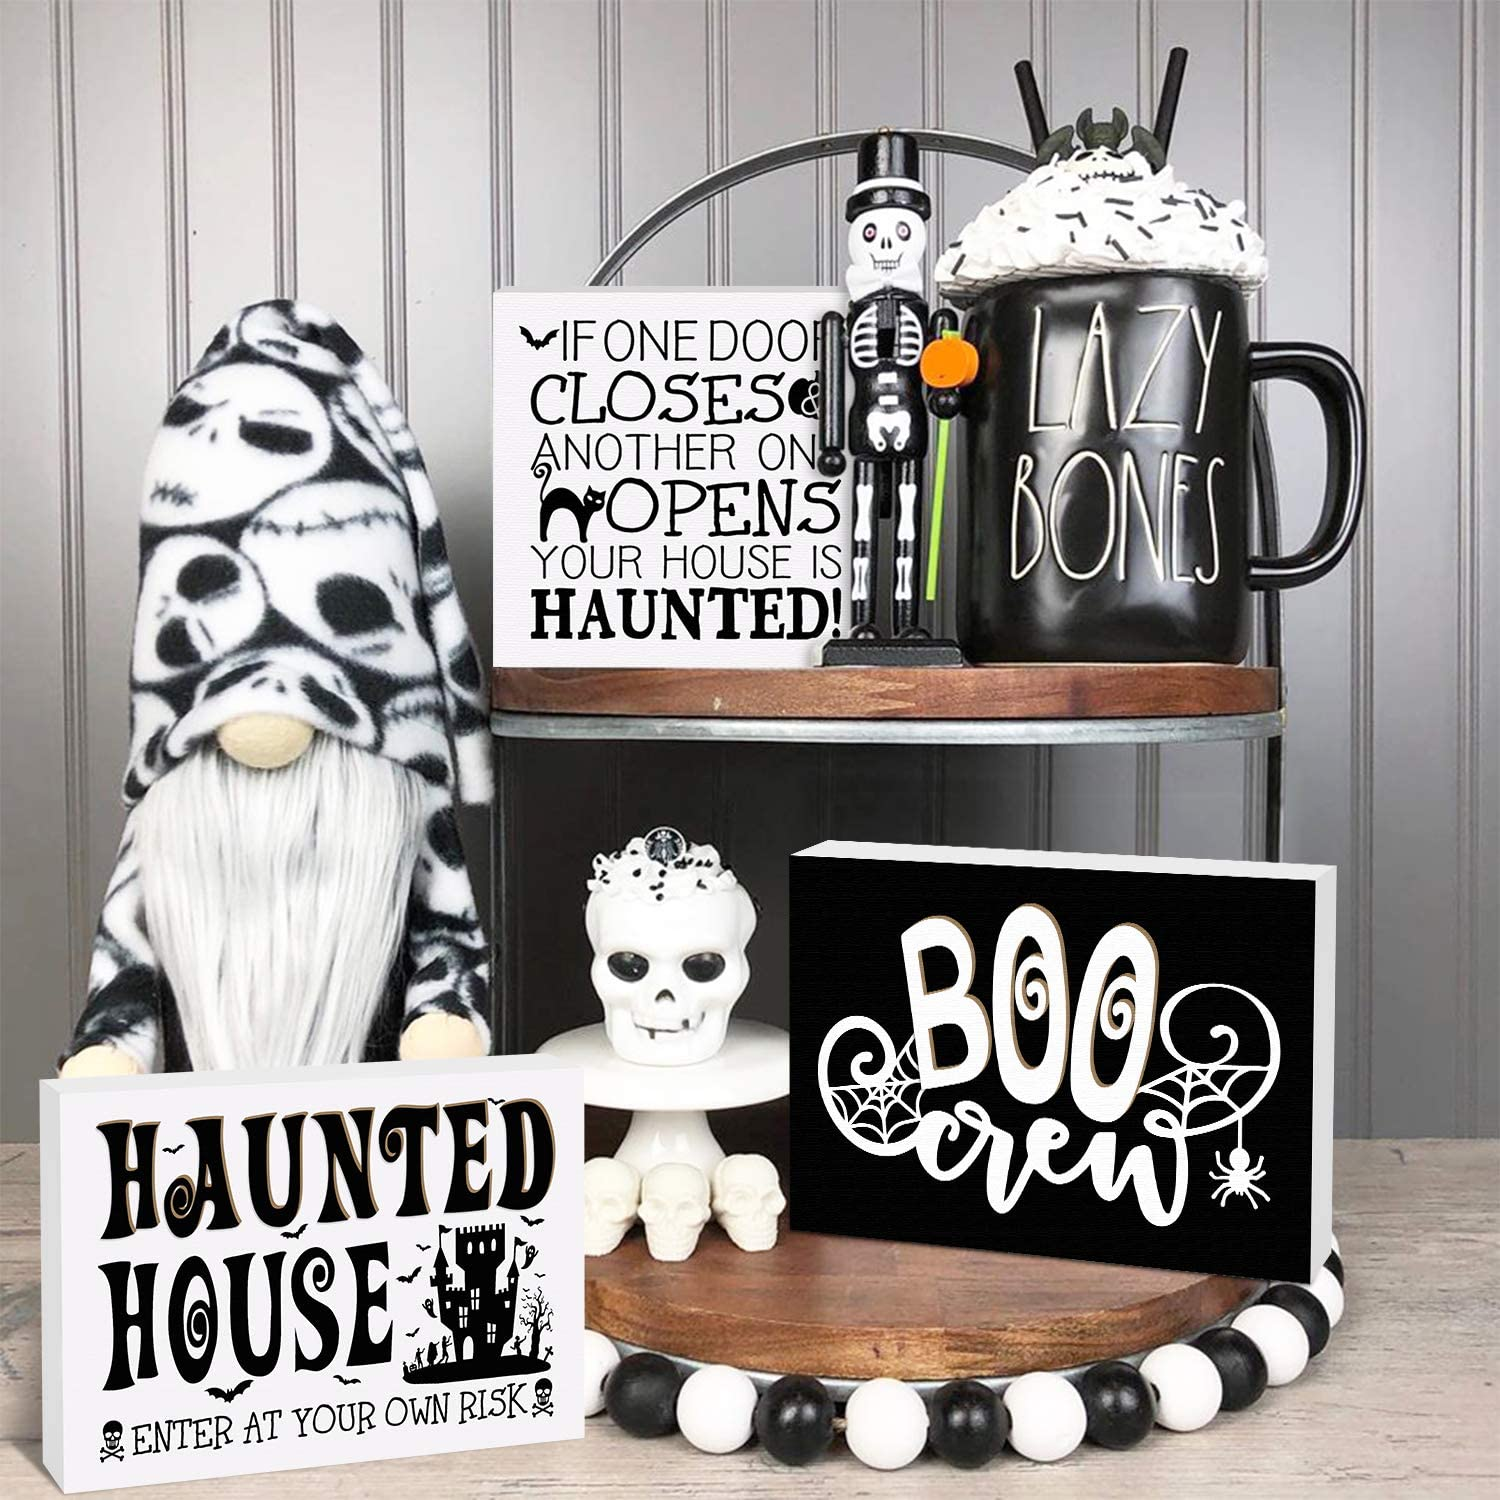 Huray Rayho Halloween Haunted House Tiered Tray Decorations Rustic Wooden Boo Crew Signs Vintage Black and White Collections Farmhouse Autumn Fall Supplies Set of 3